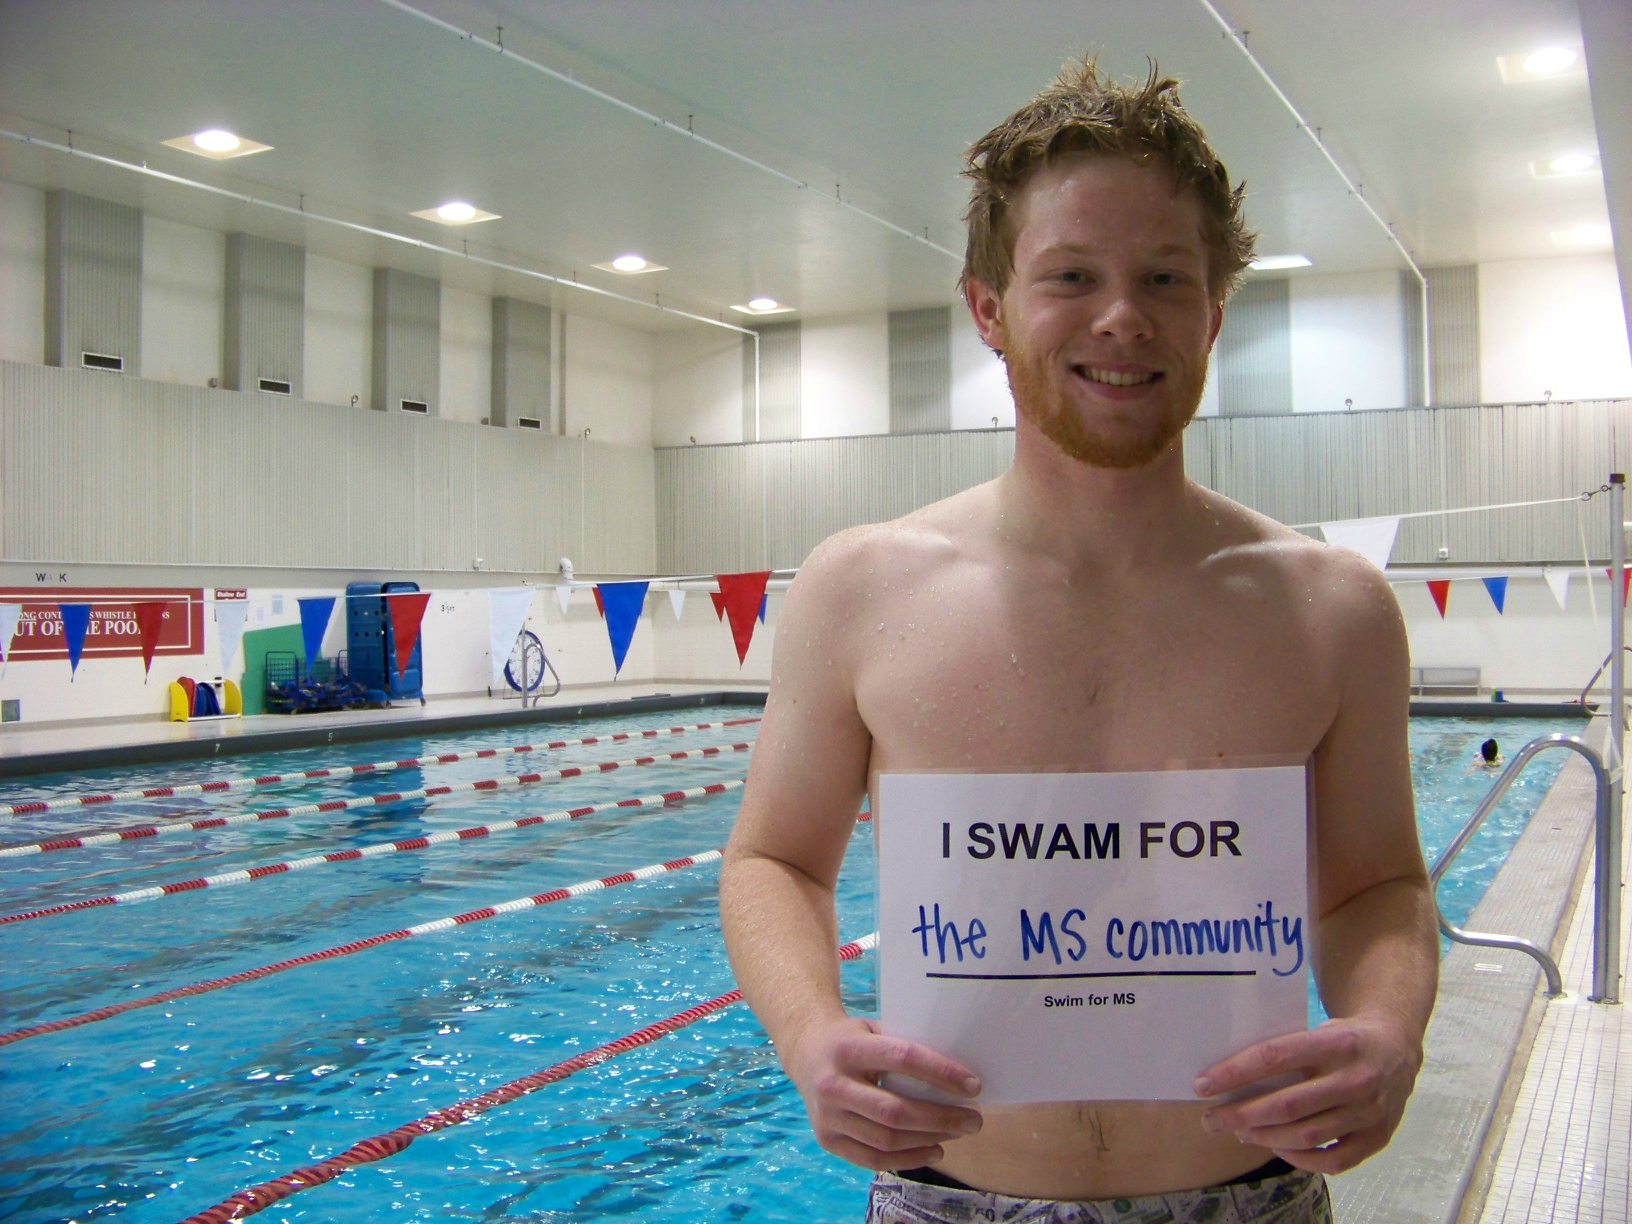 I Swam for the MS Community